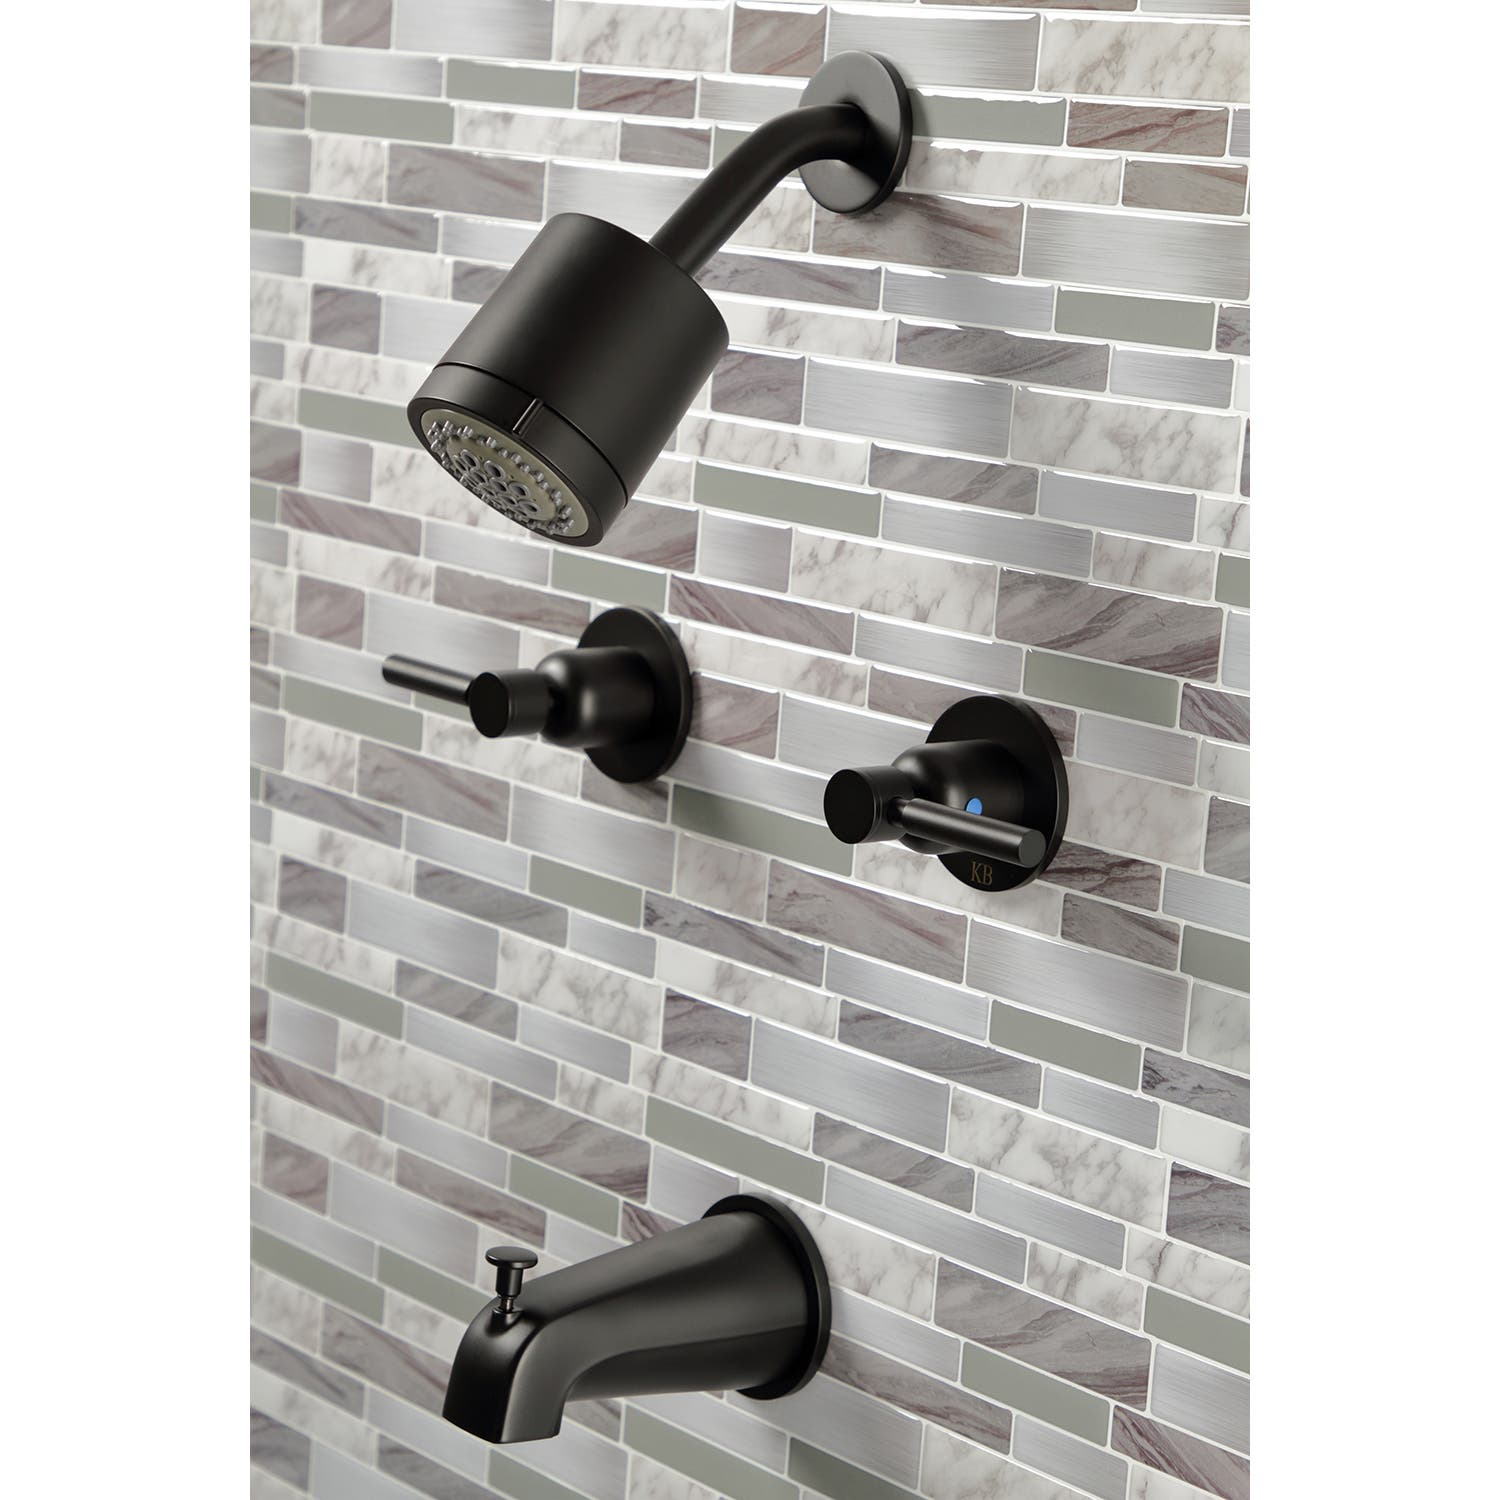 Kingston Brass Kbx8140dl Concord Tub Shower Faucet With 2 Handles Matte Black